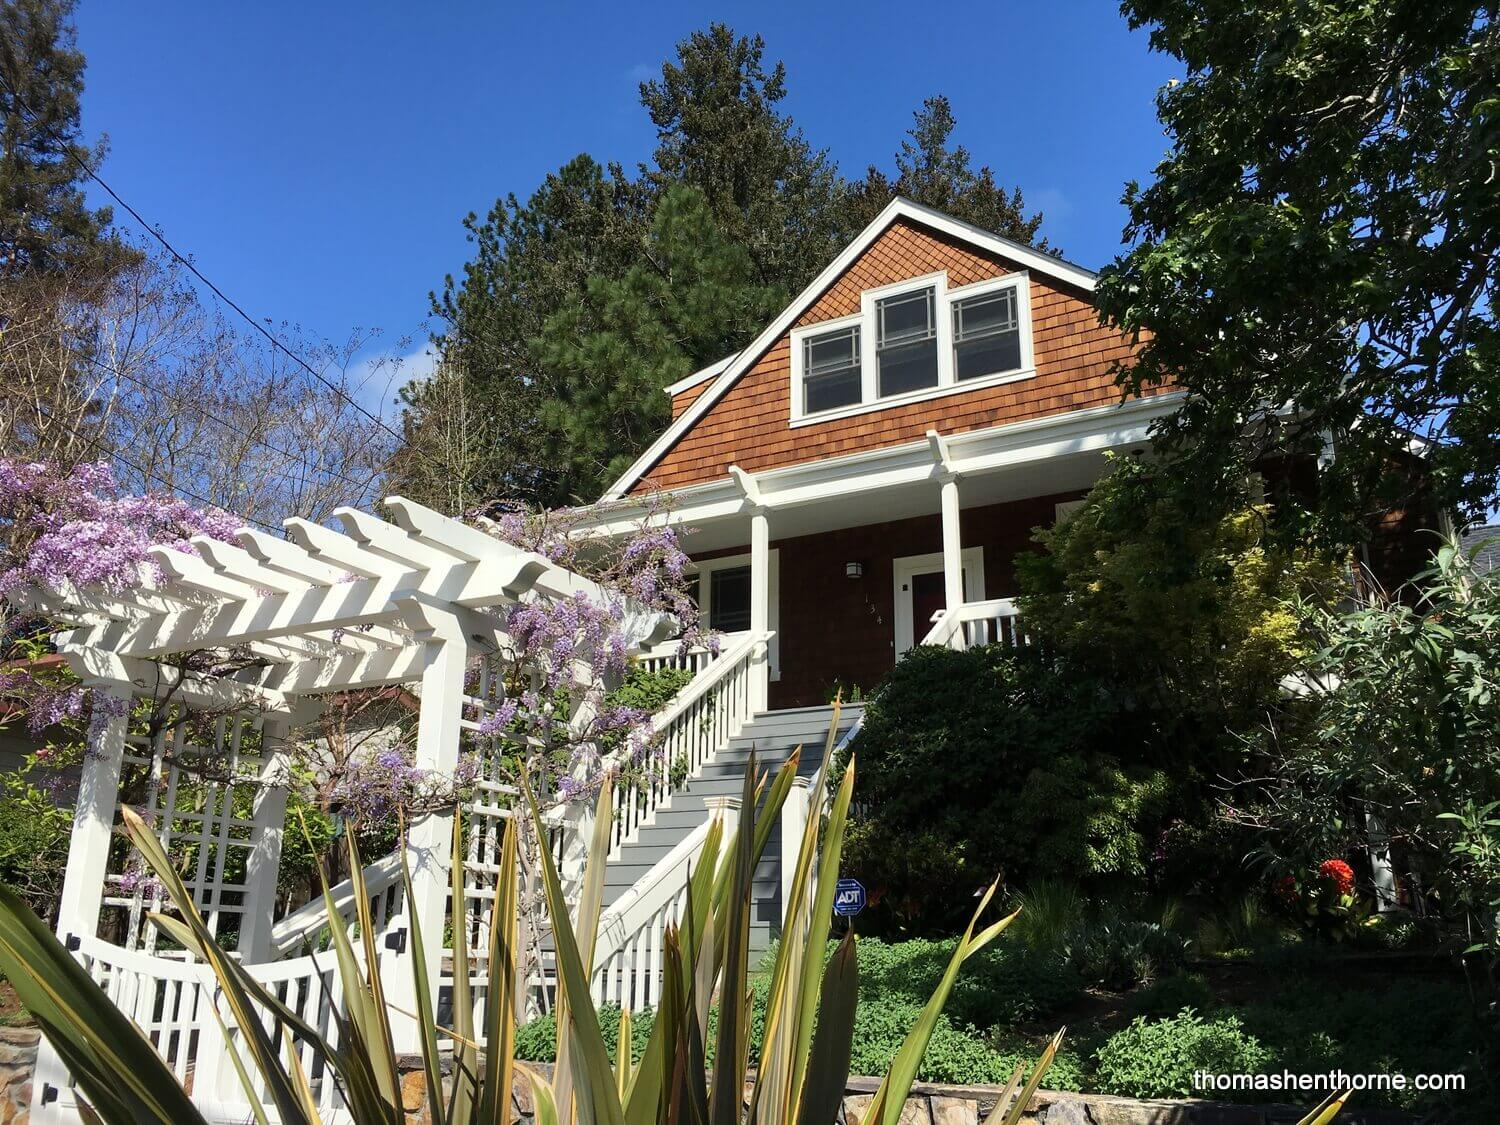 shingled home with wisteria in bloom